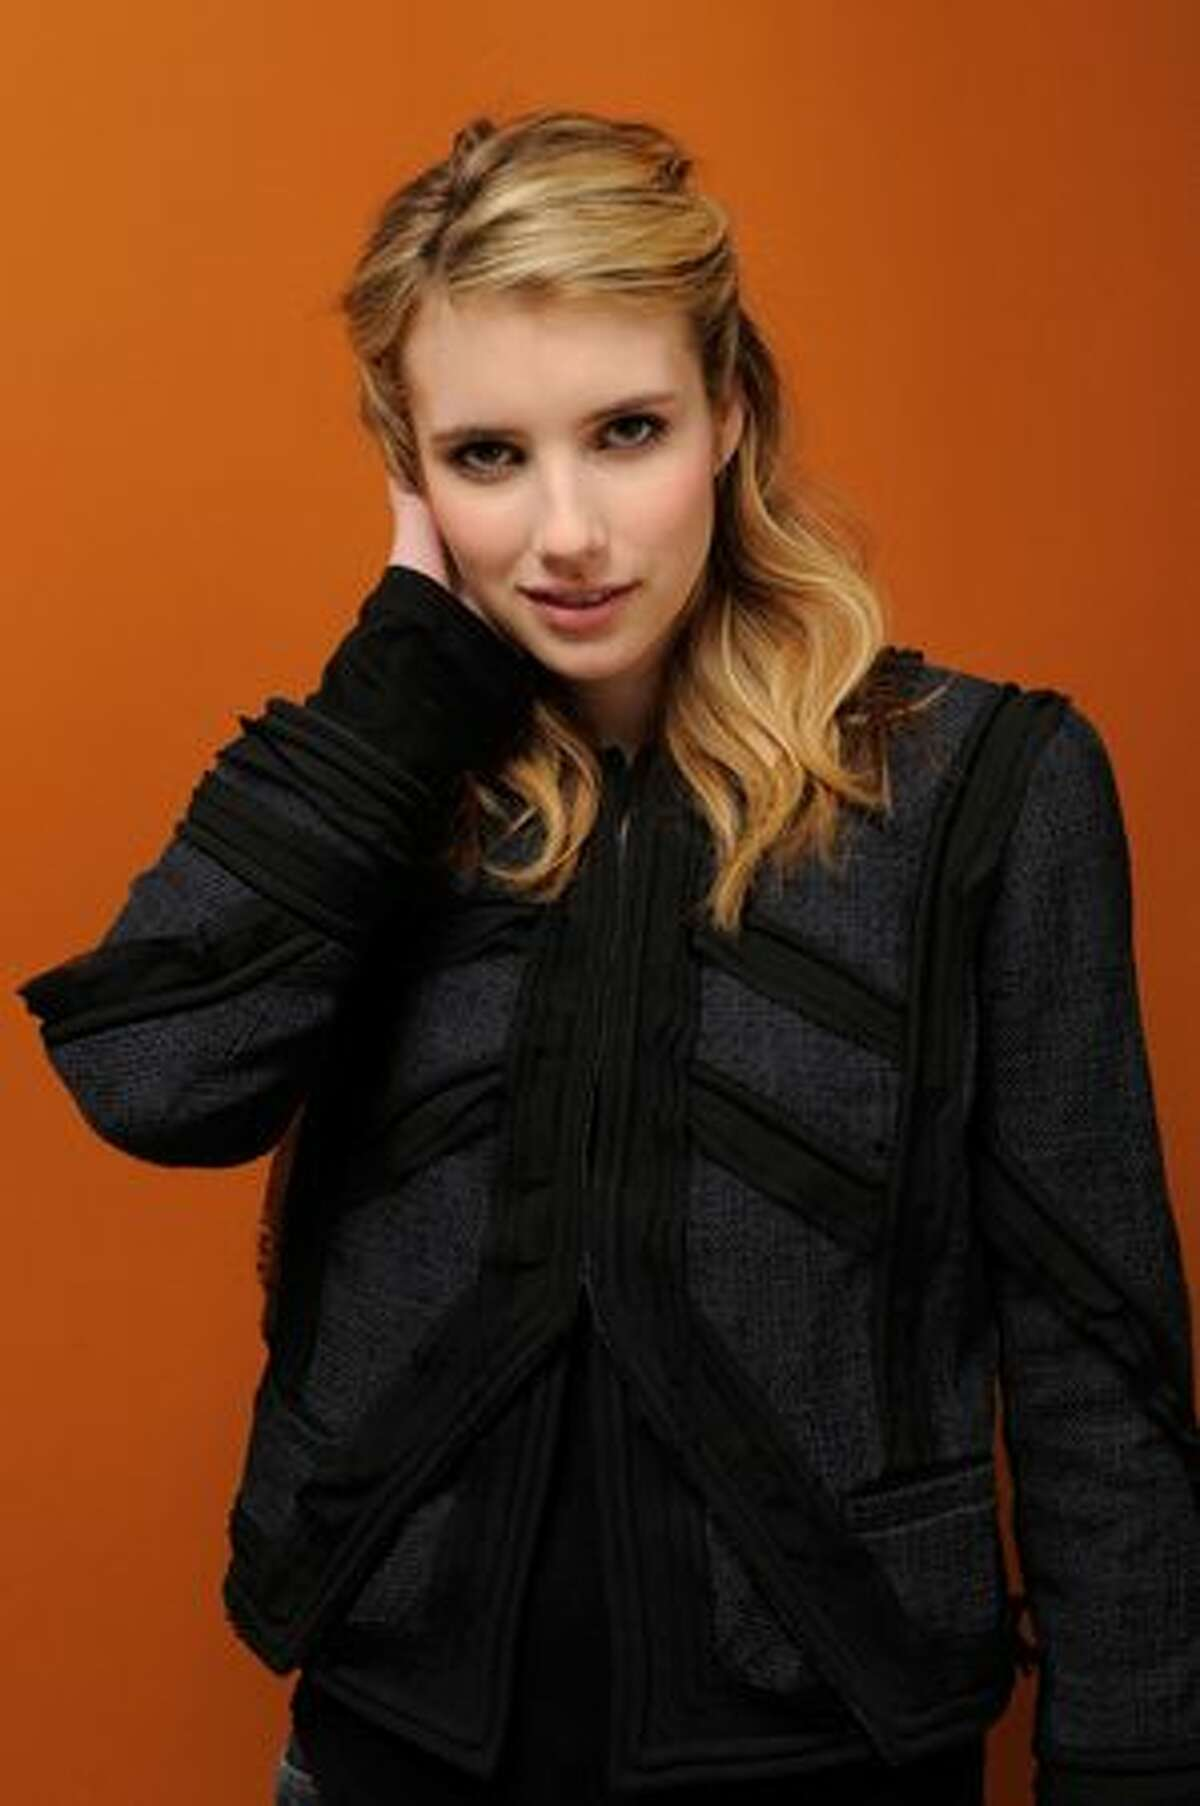 Actress Emma Roberts poses for a portrait during the 2011 Sundance Film Festival at The Samsung Galaxy Tab Lift in Park City, Utah.